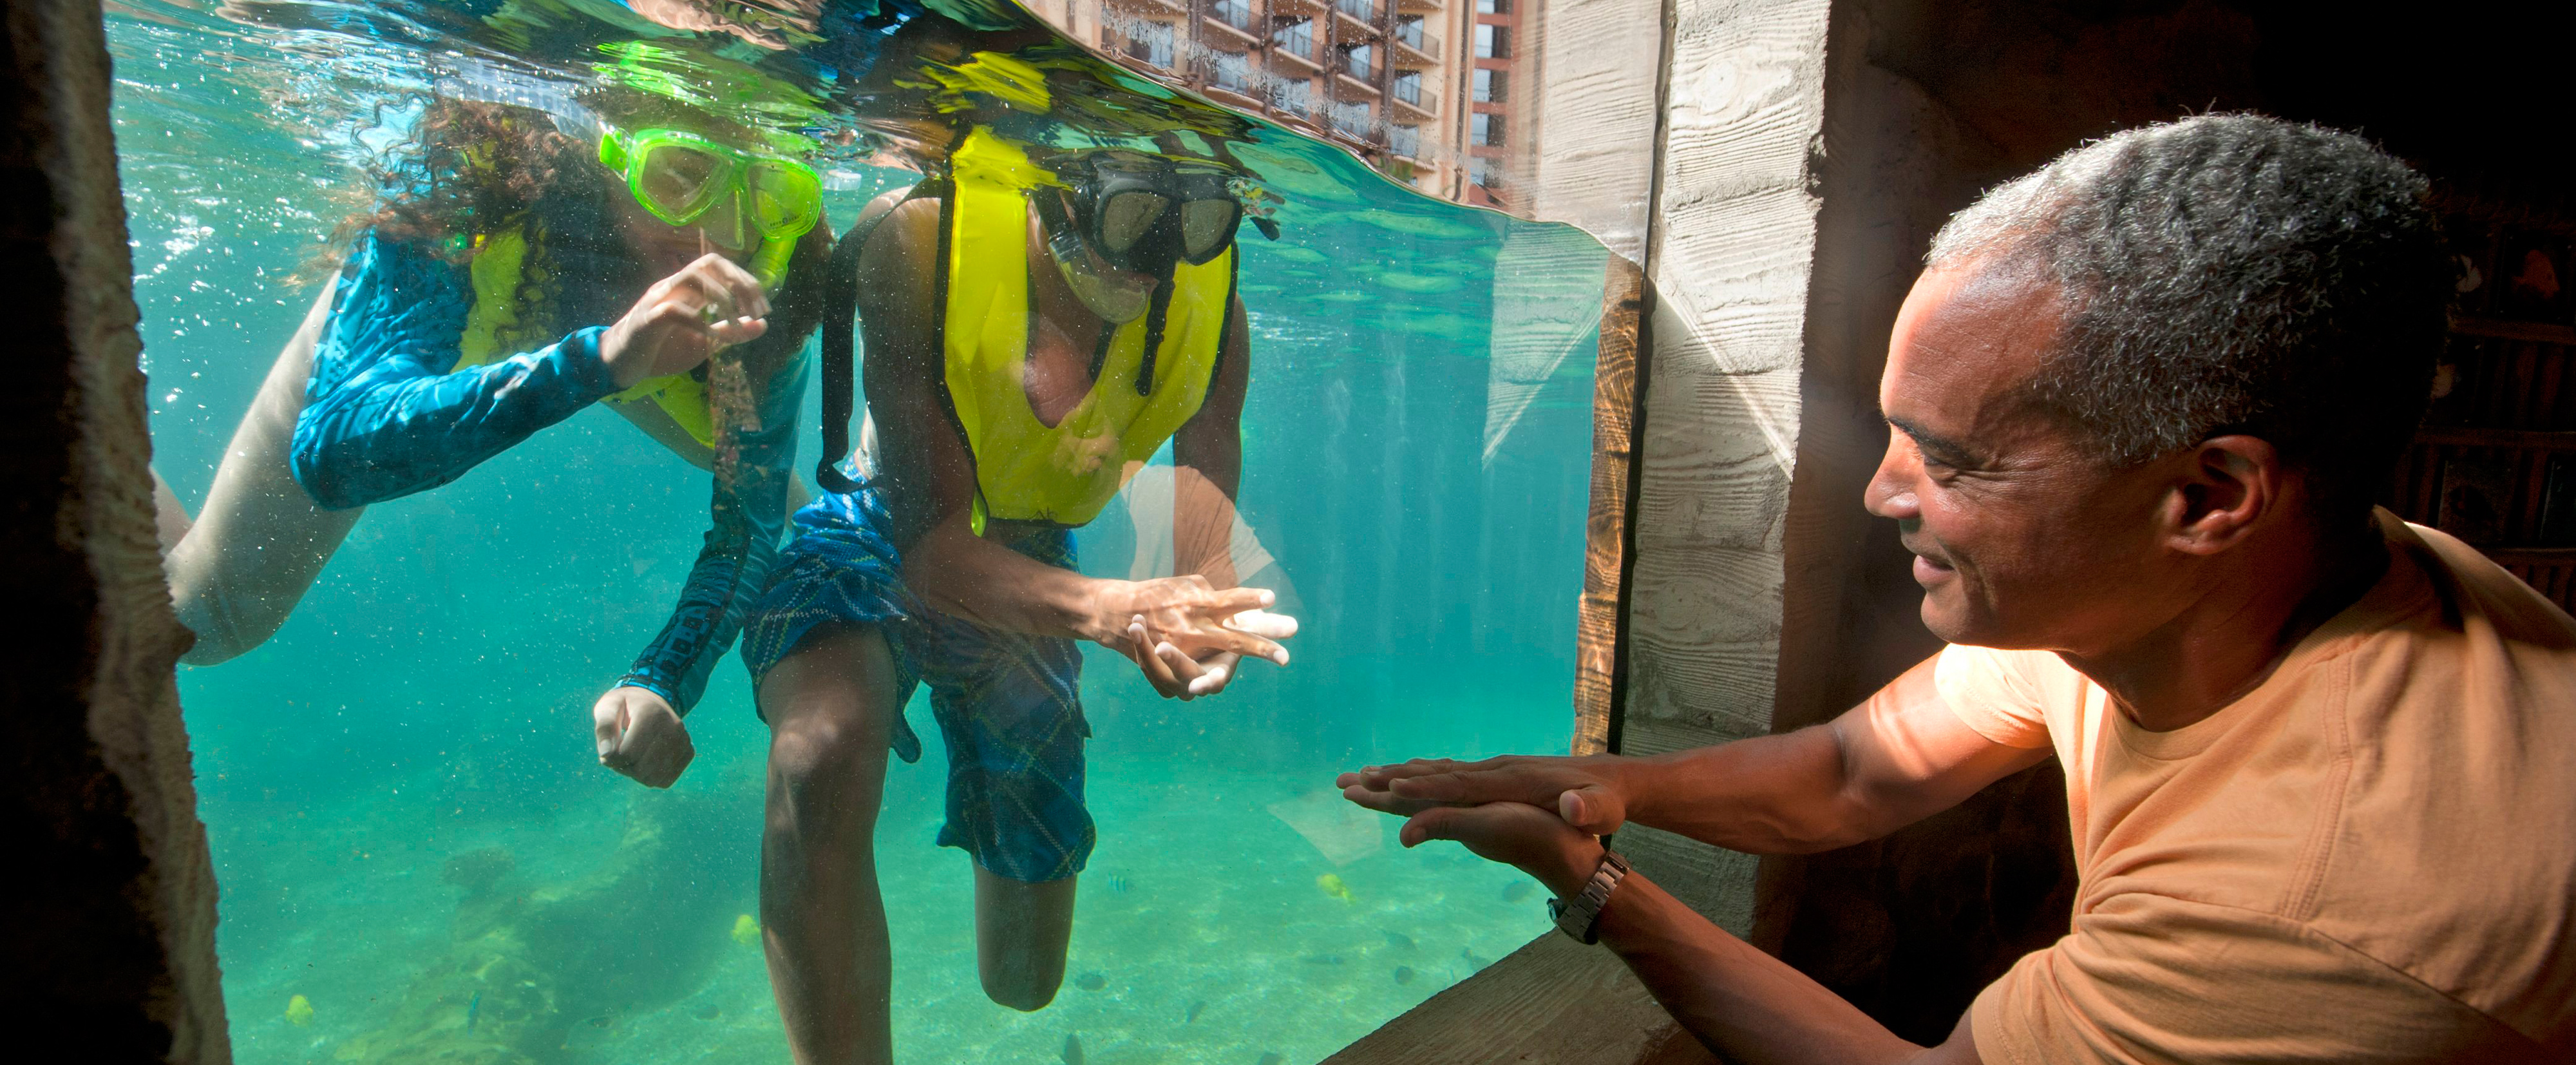 Aquarium glass separates a father from his snorkeling kids as they play rock-paper-scissors together